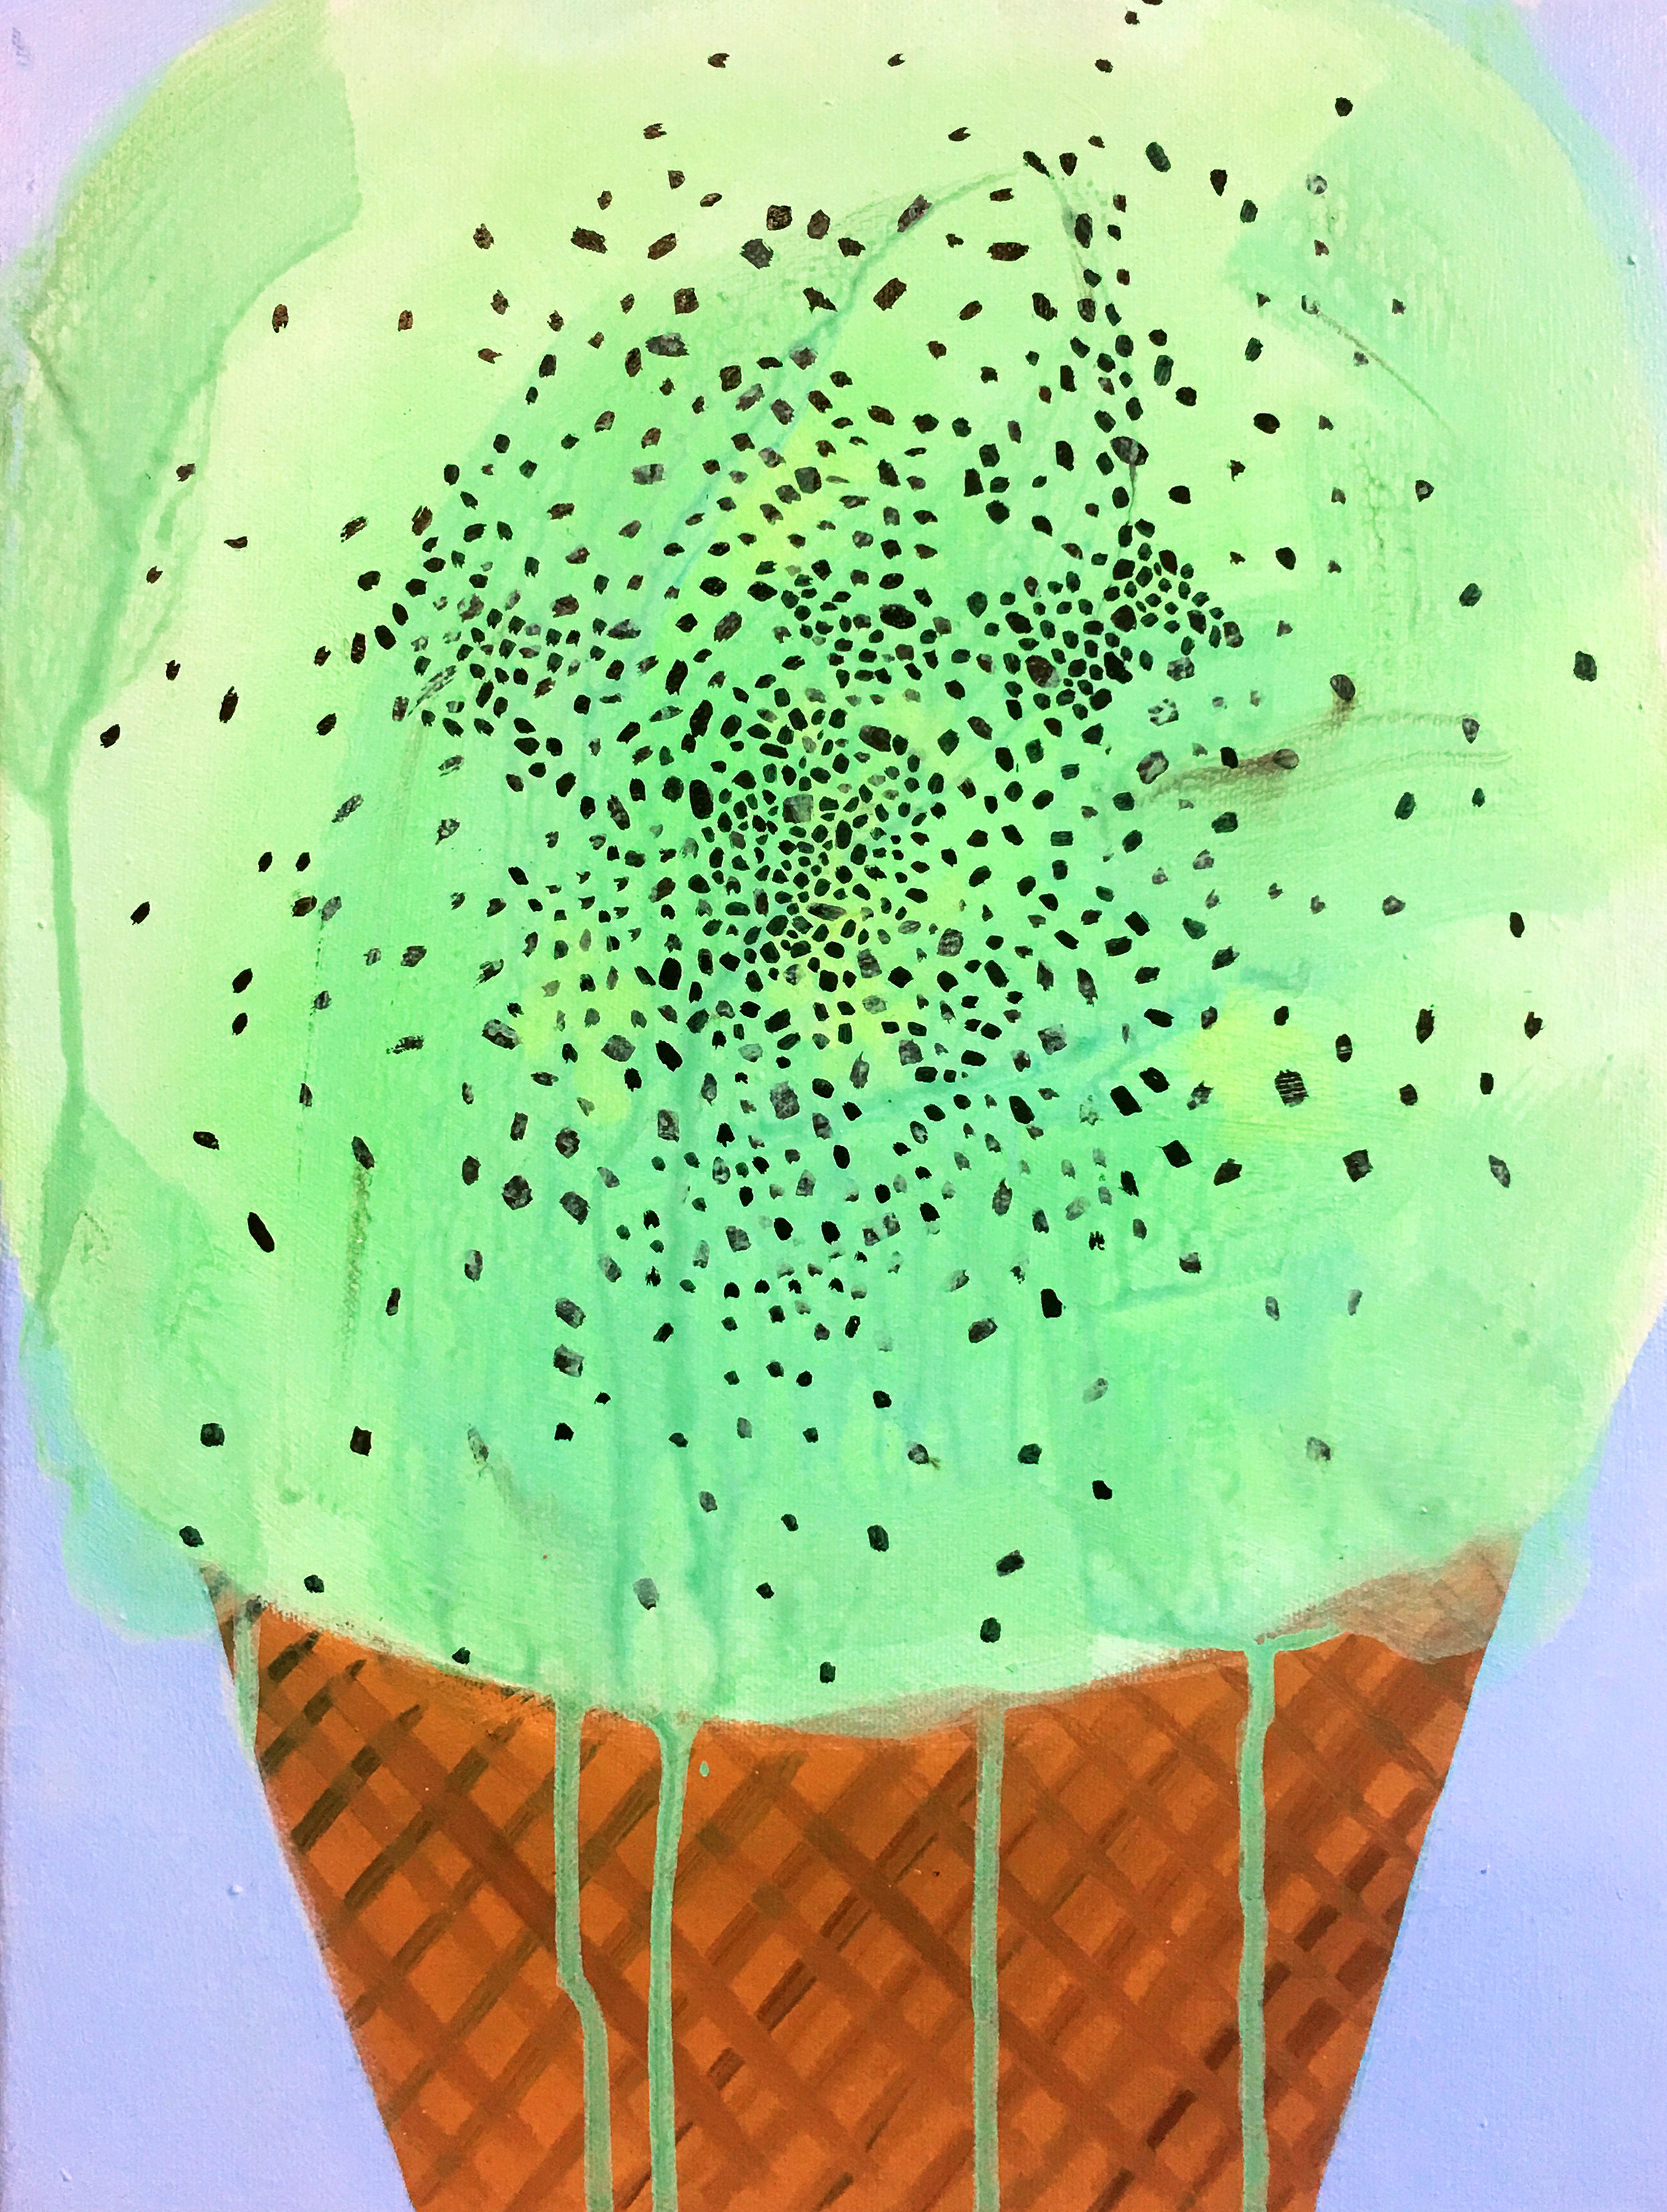 Mint chip , 2015, acrylic on canvas. Jennifer Coates.